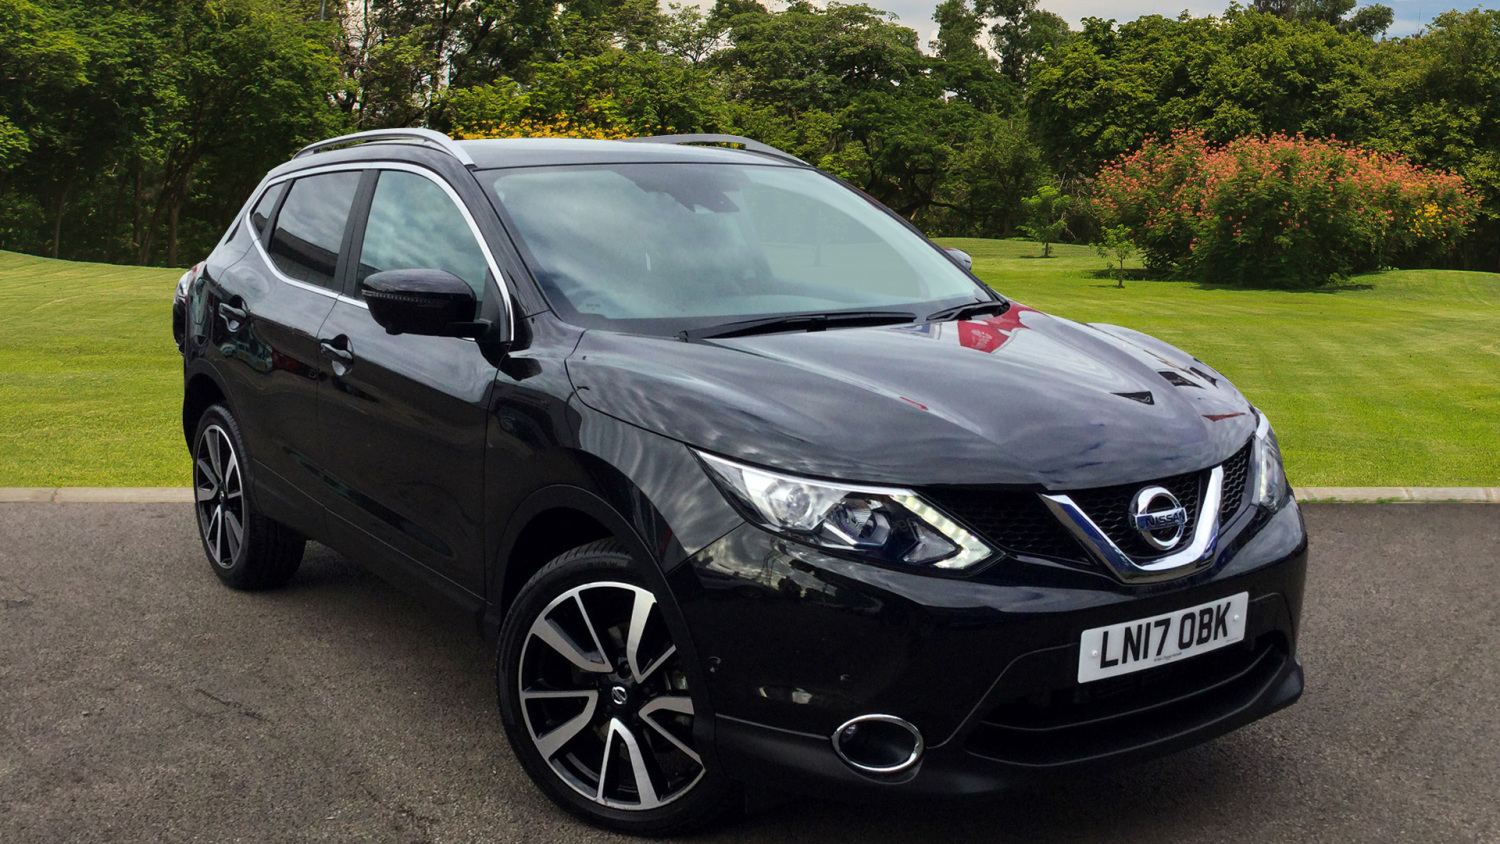 used nissan qashqai 1 6 dci tekna non panoramic 5dr xtronic diesel hatchback for sale. Black Bedroom Furniture Sets. Home Design Ideas